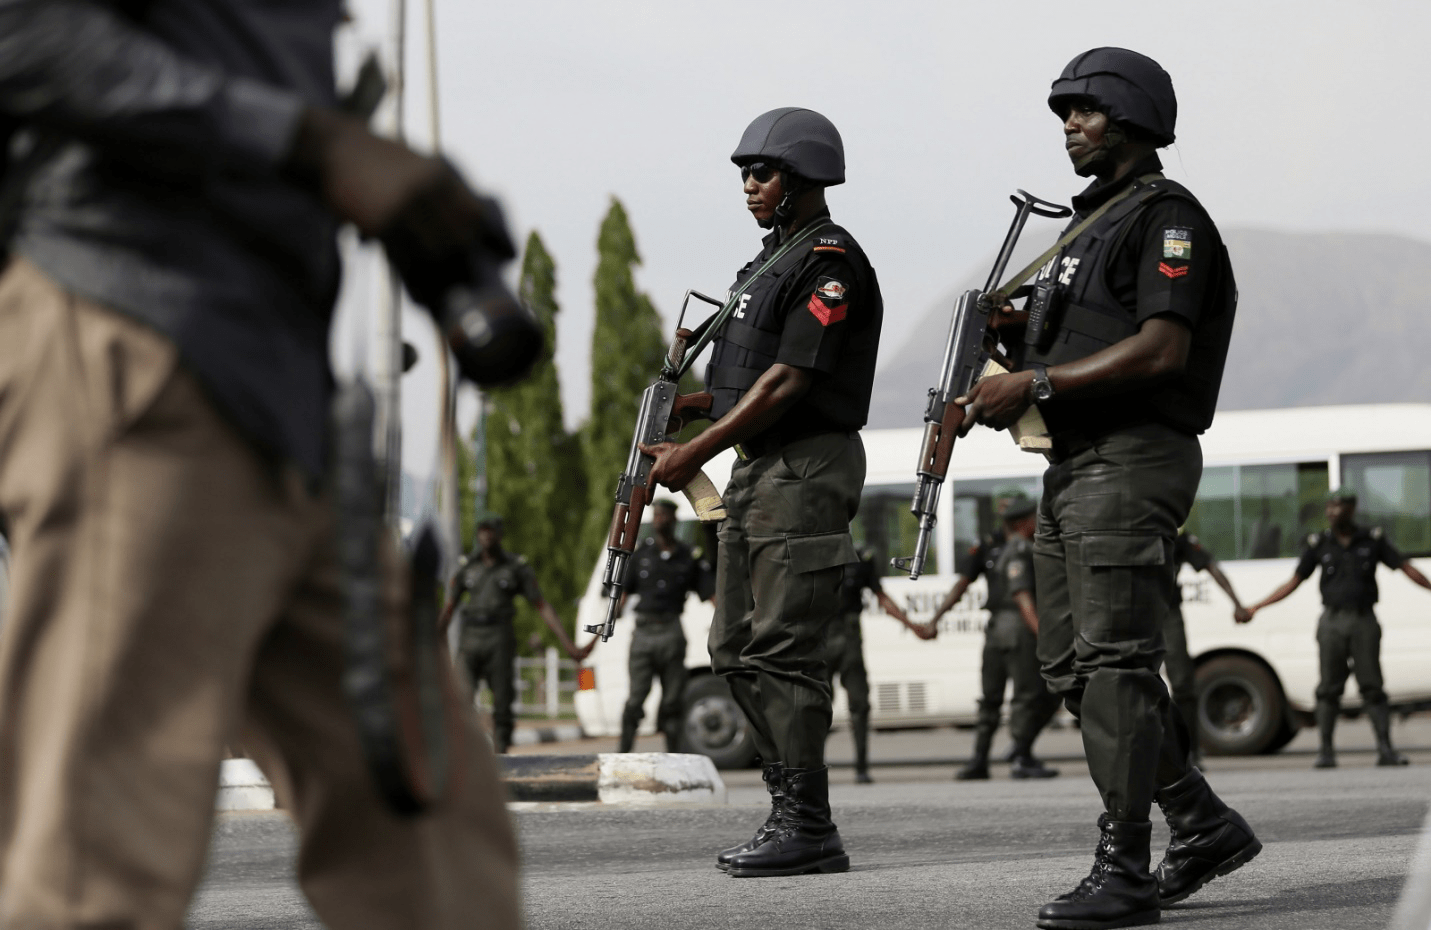 Zamfara bye election: Police to deploy 2,300 Armed Policemen in Bakura